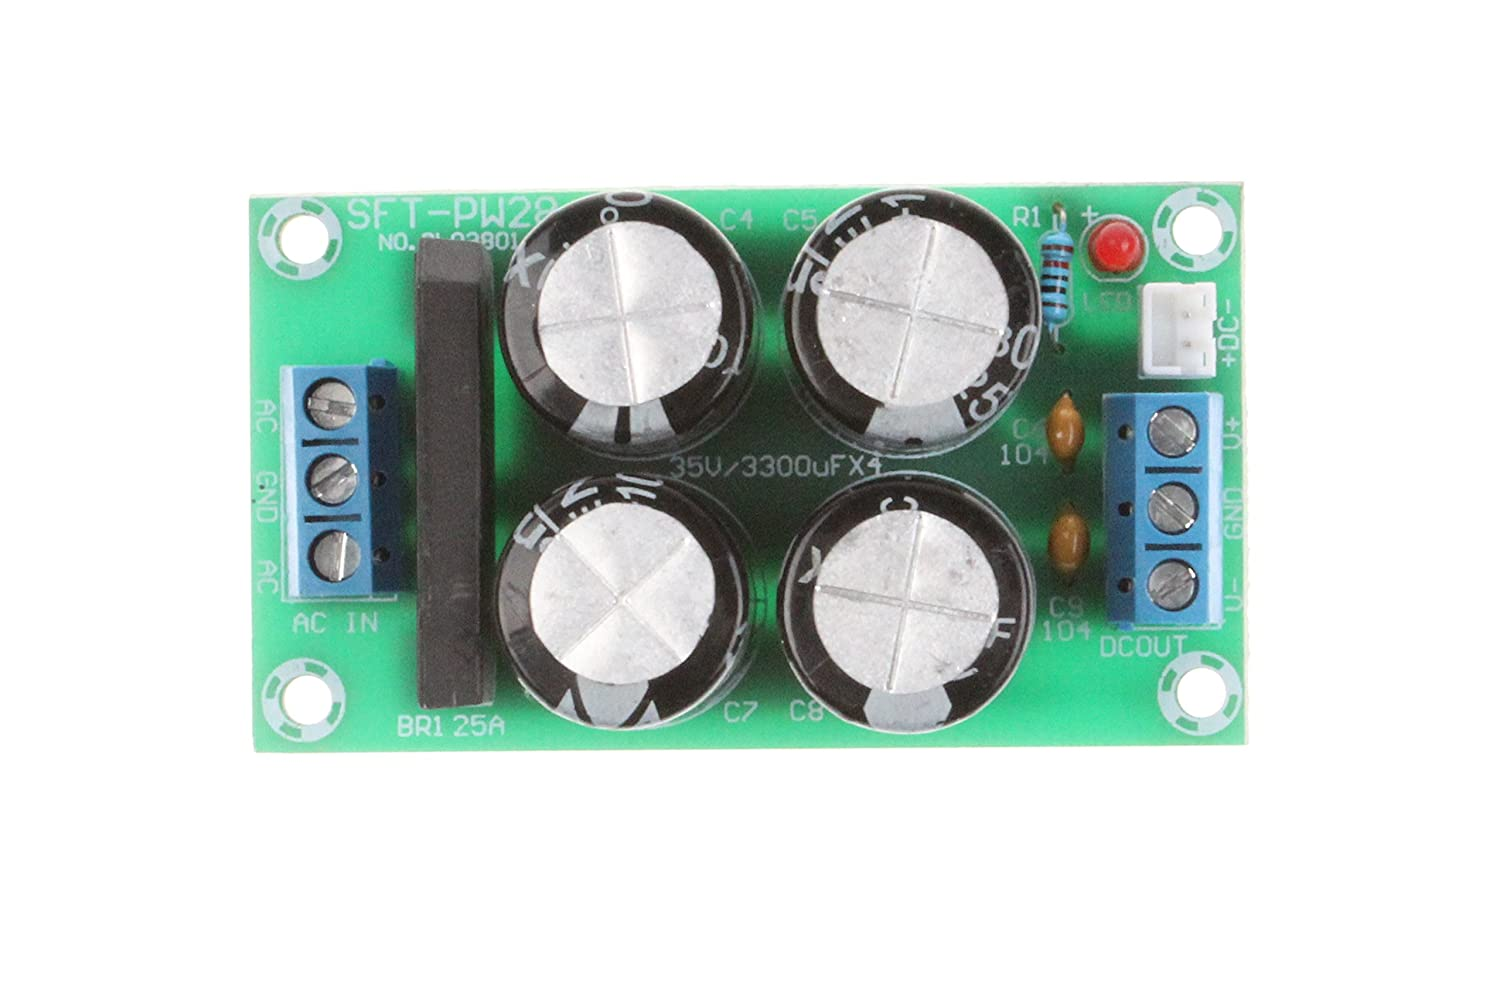 Noyito 25a Dual Power Rectifier Filter Board Ac 9 17v Voltage Regulator Modulein Integrated Circuits Dc 12 24v Amplifier Supply Suitable For Lm1875 Tda2030